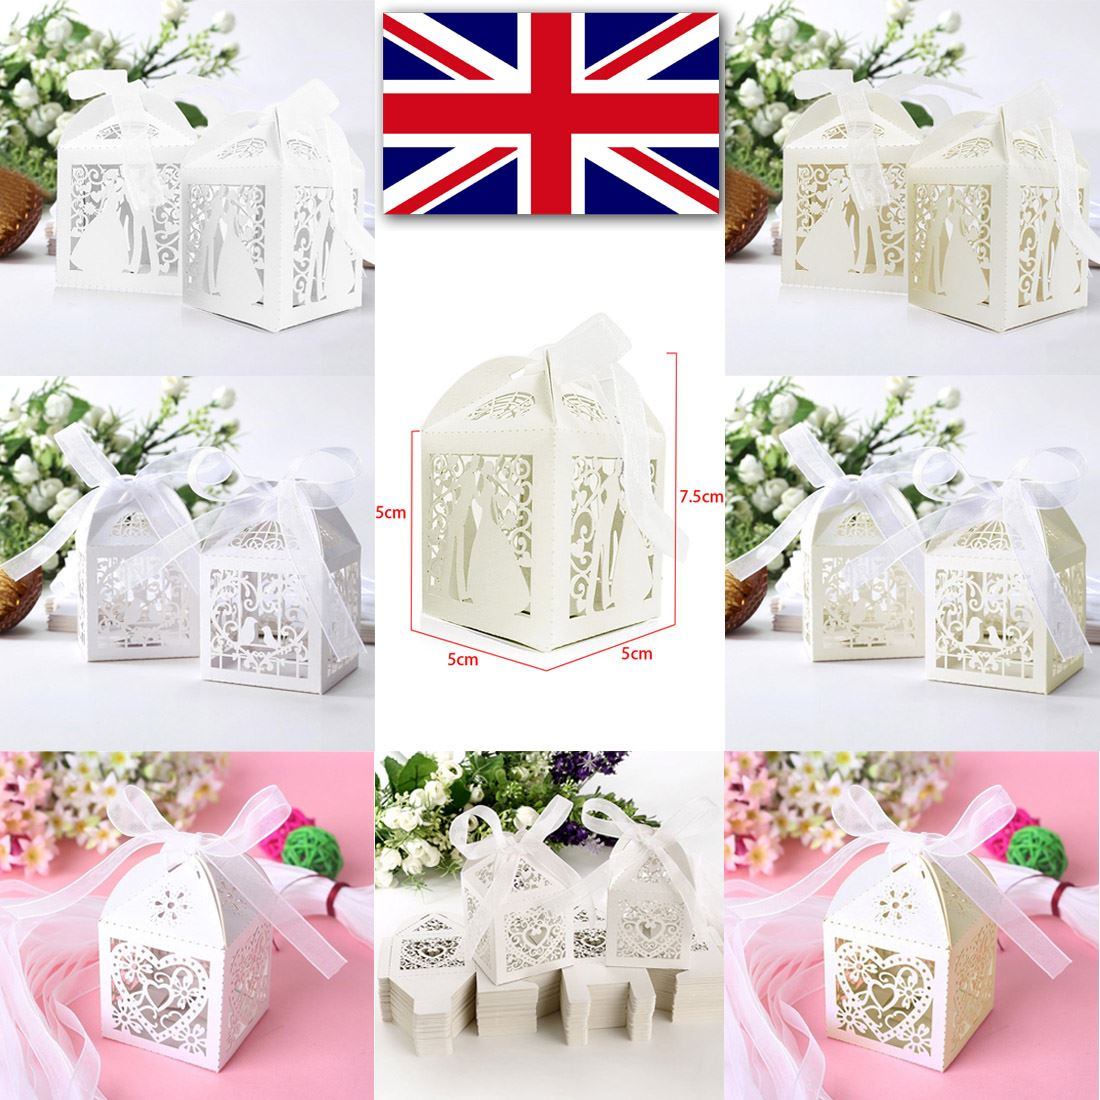 Wedding Cake Gift Boxes Uk : ... Wedding Party Sweets Candy Cake Gift Favour Boxes With Ribbon UK